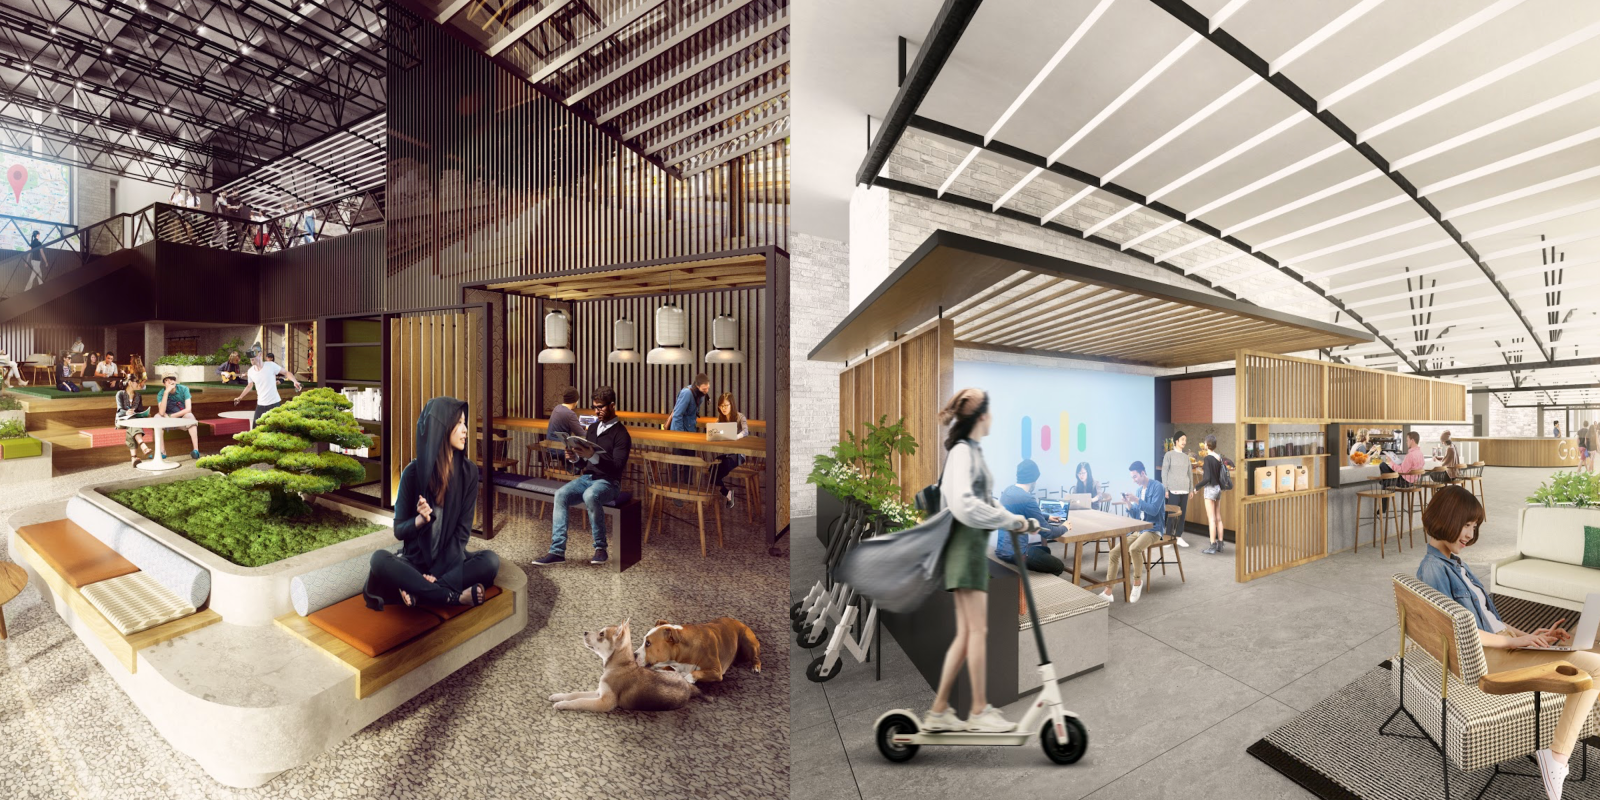 image of google office. Google Announces New Tokyo Office To Double Presence In Japan, Opening 2019 Image Of